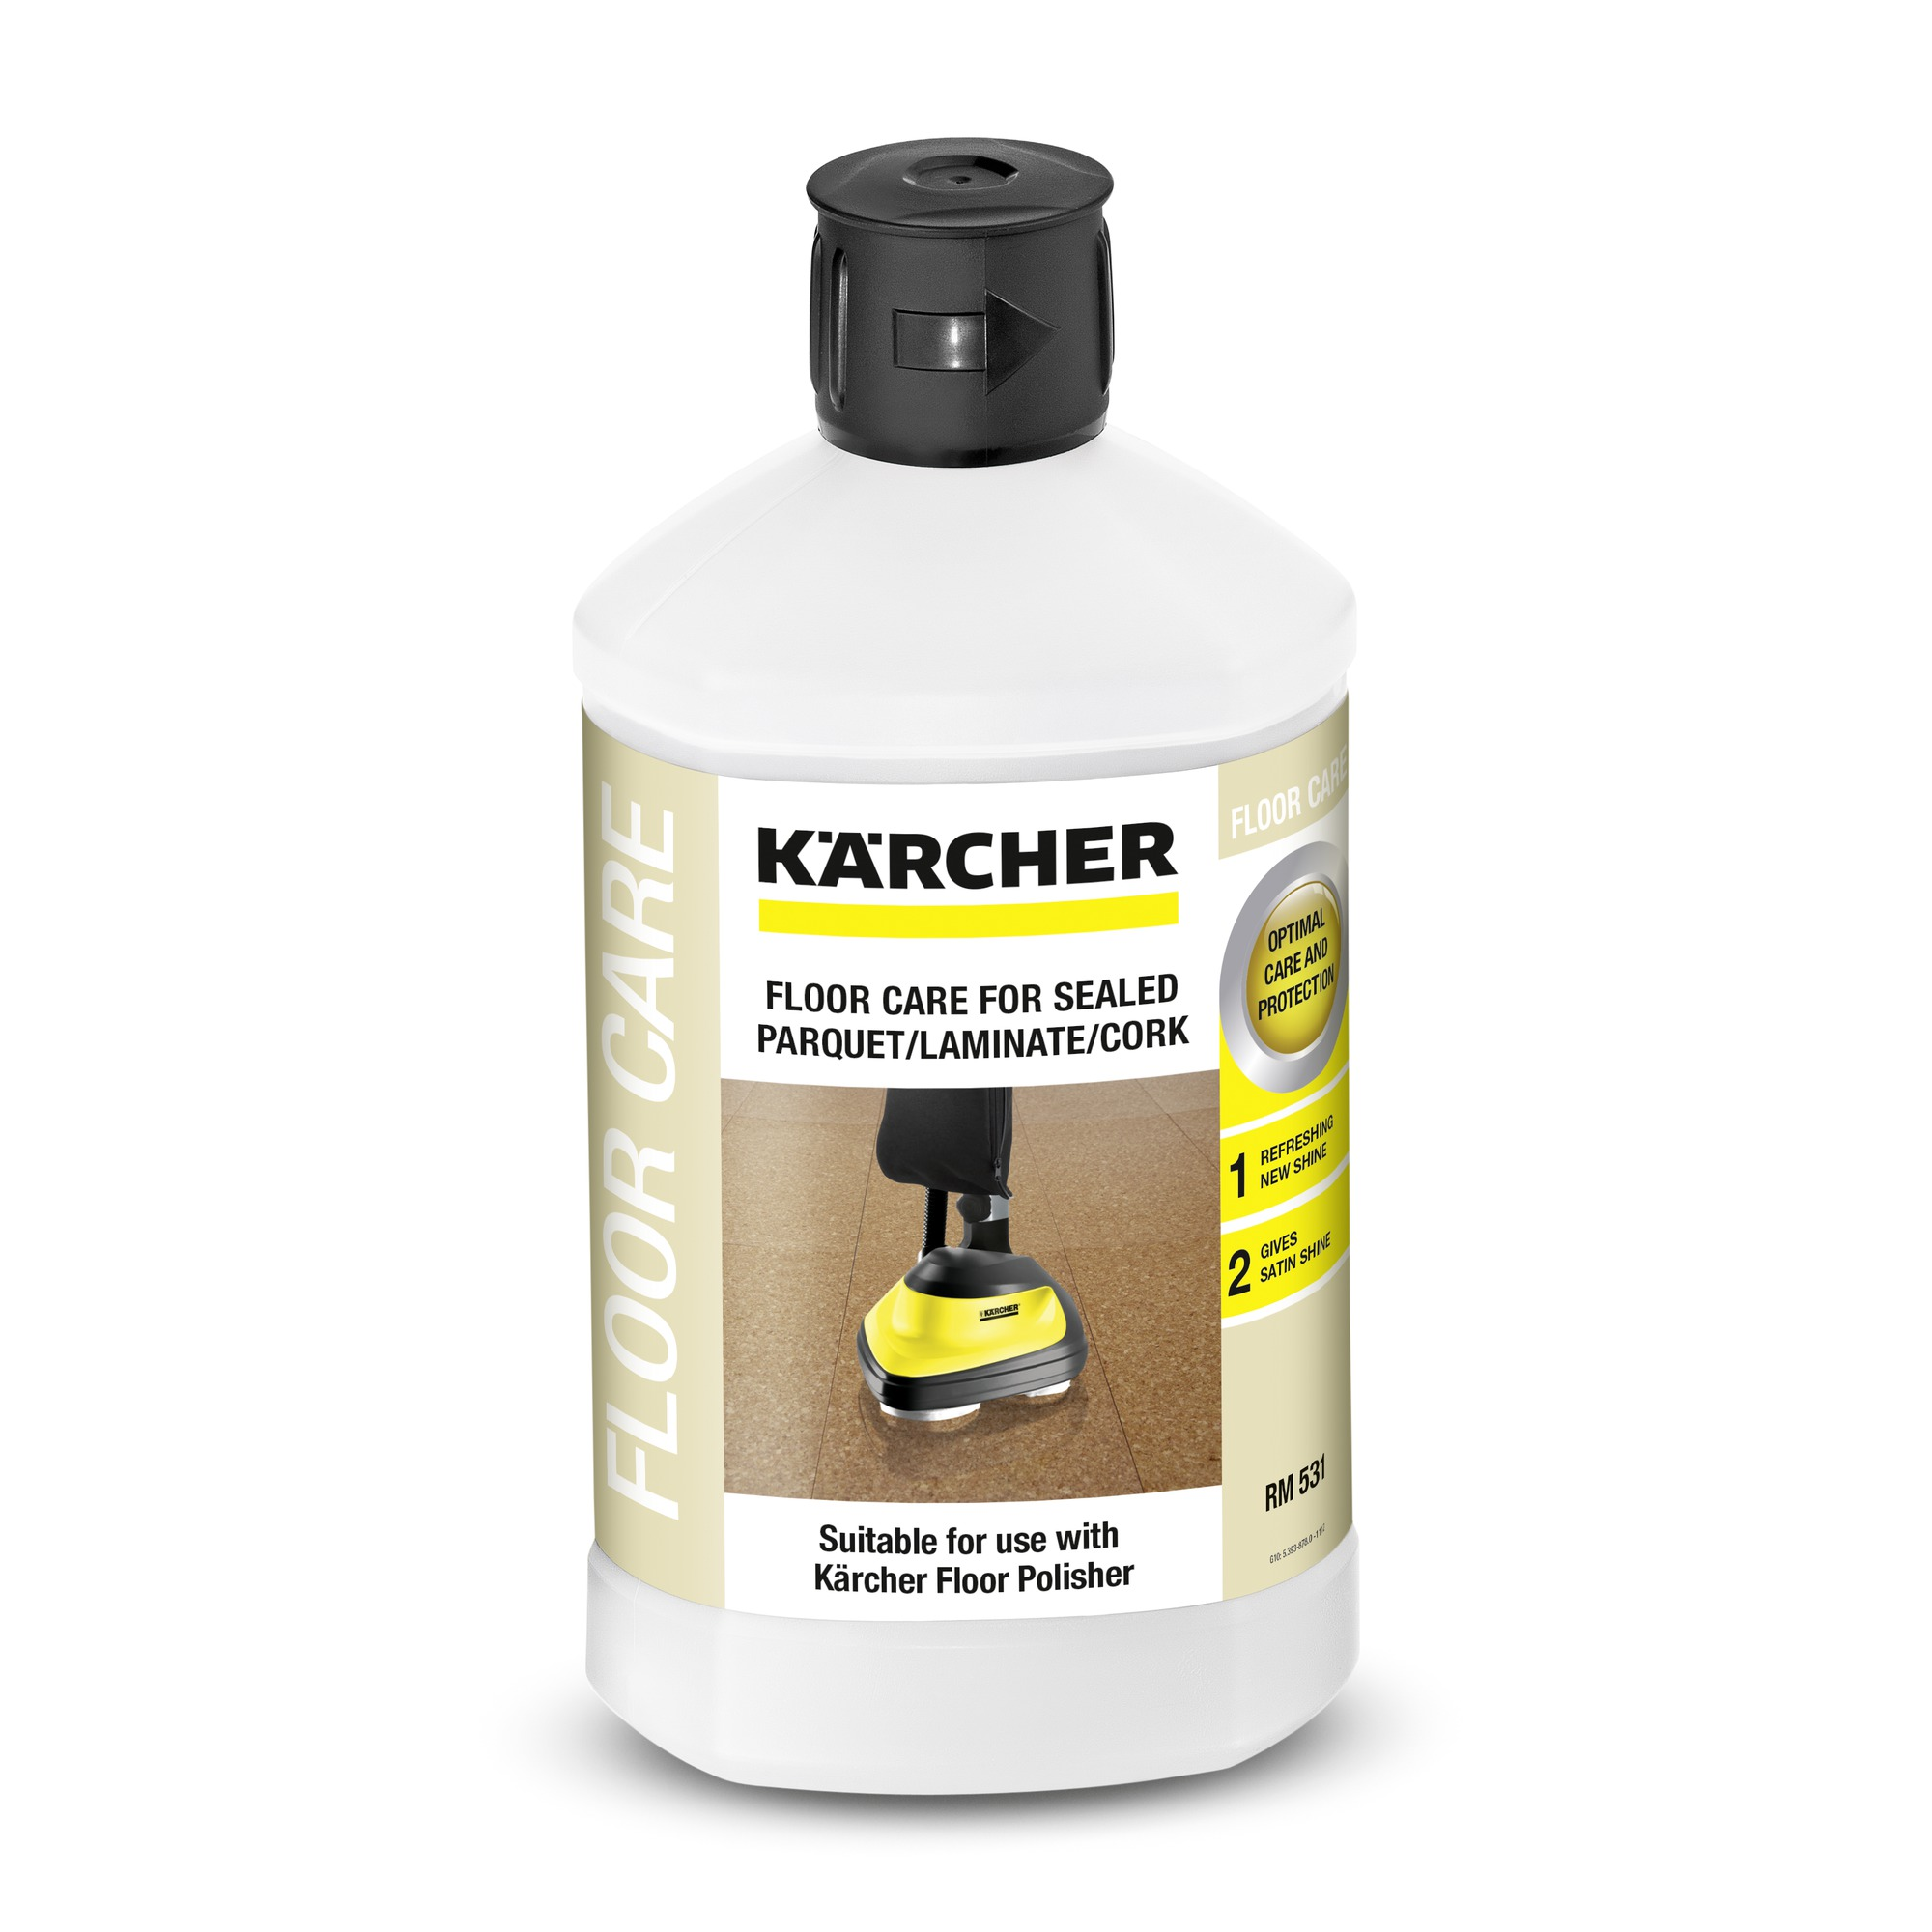 RM 531 6.295-777.0 KARCHER - KARCHER PREMIER CENTER